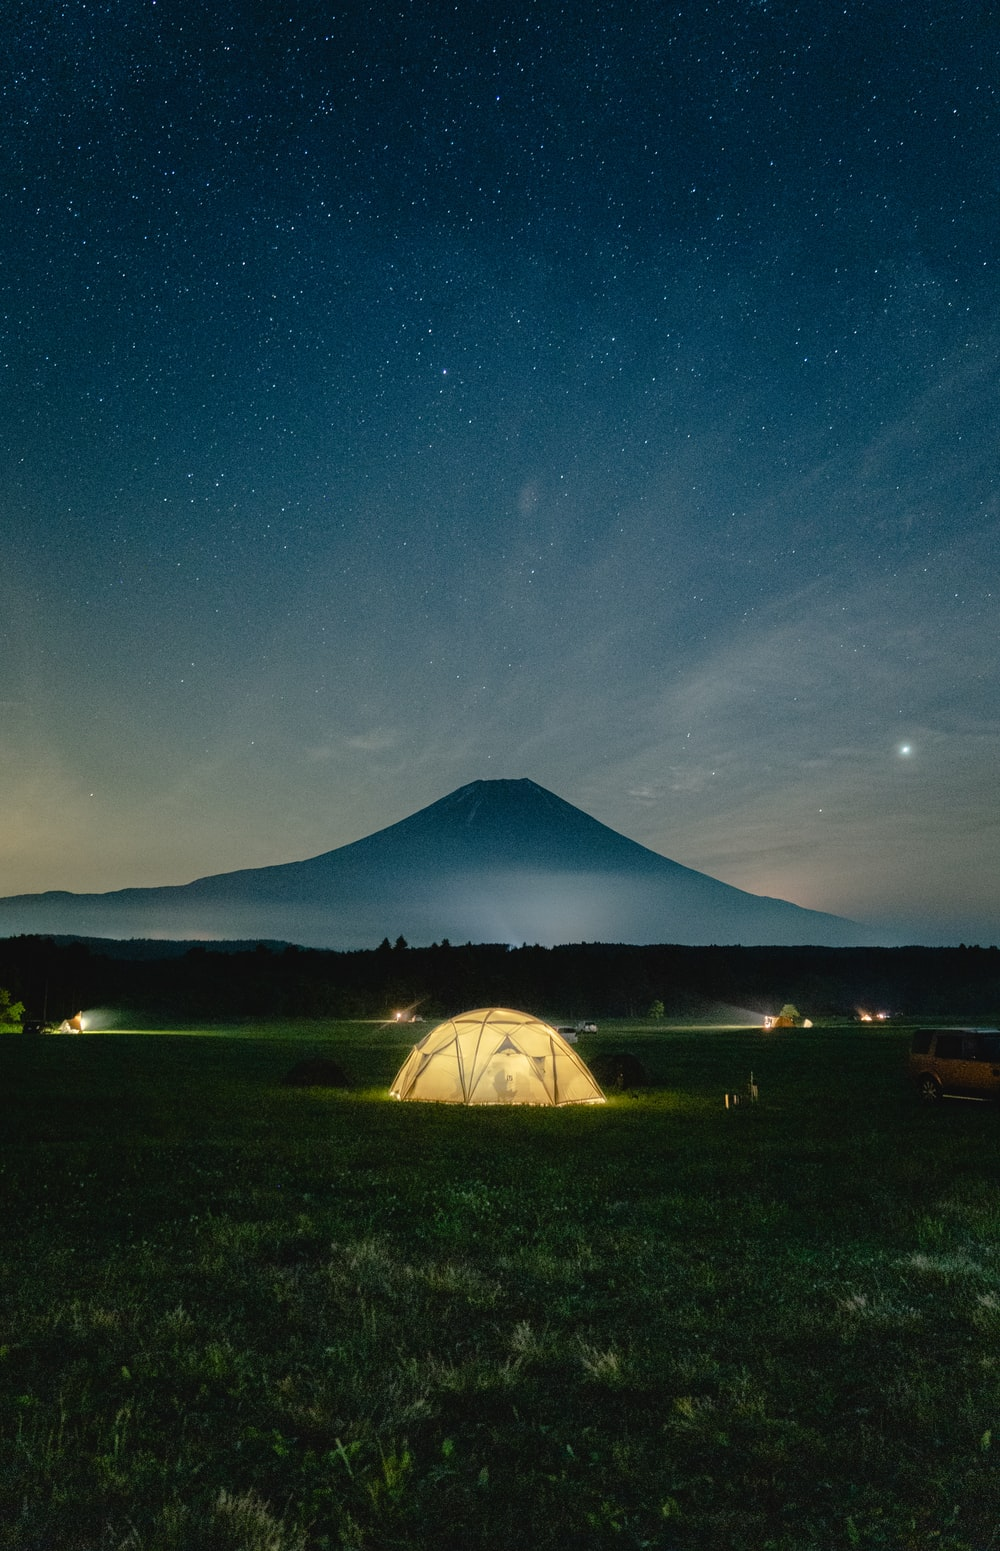 white tent under blue sky during night time